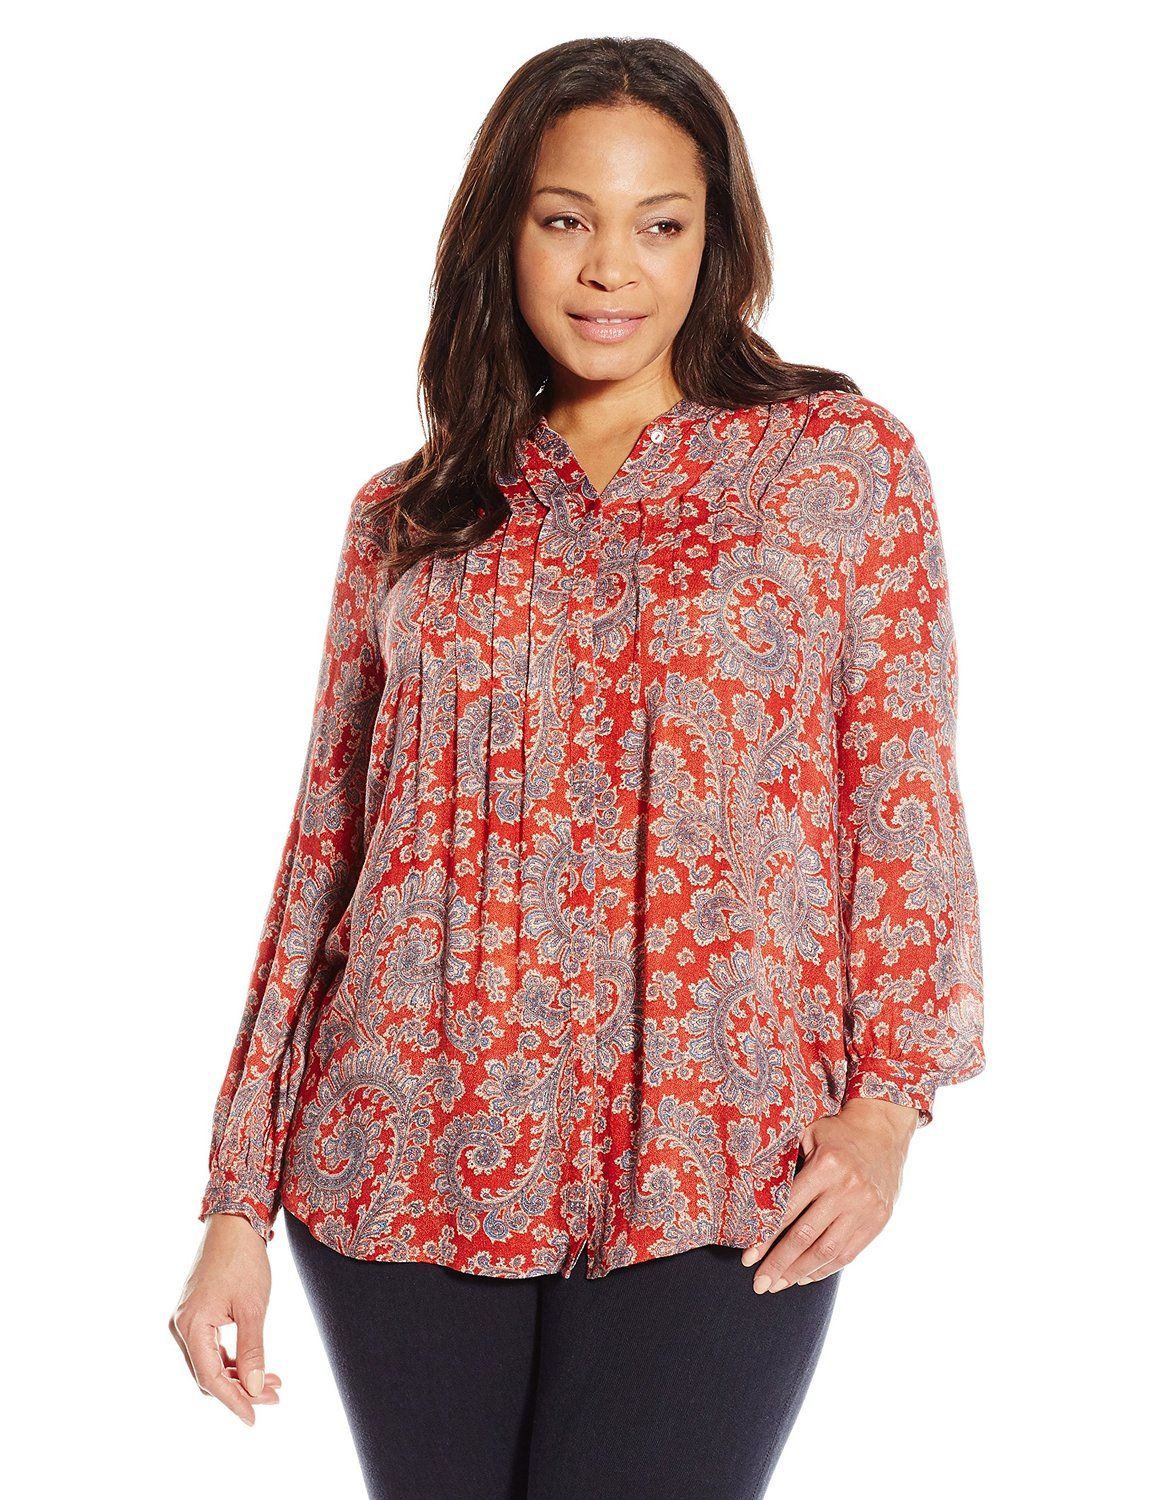 aa7d637cdf2 Plus Size Womens Paisley Tops